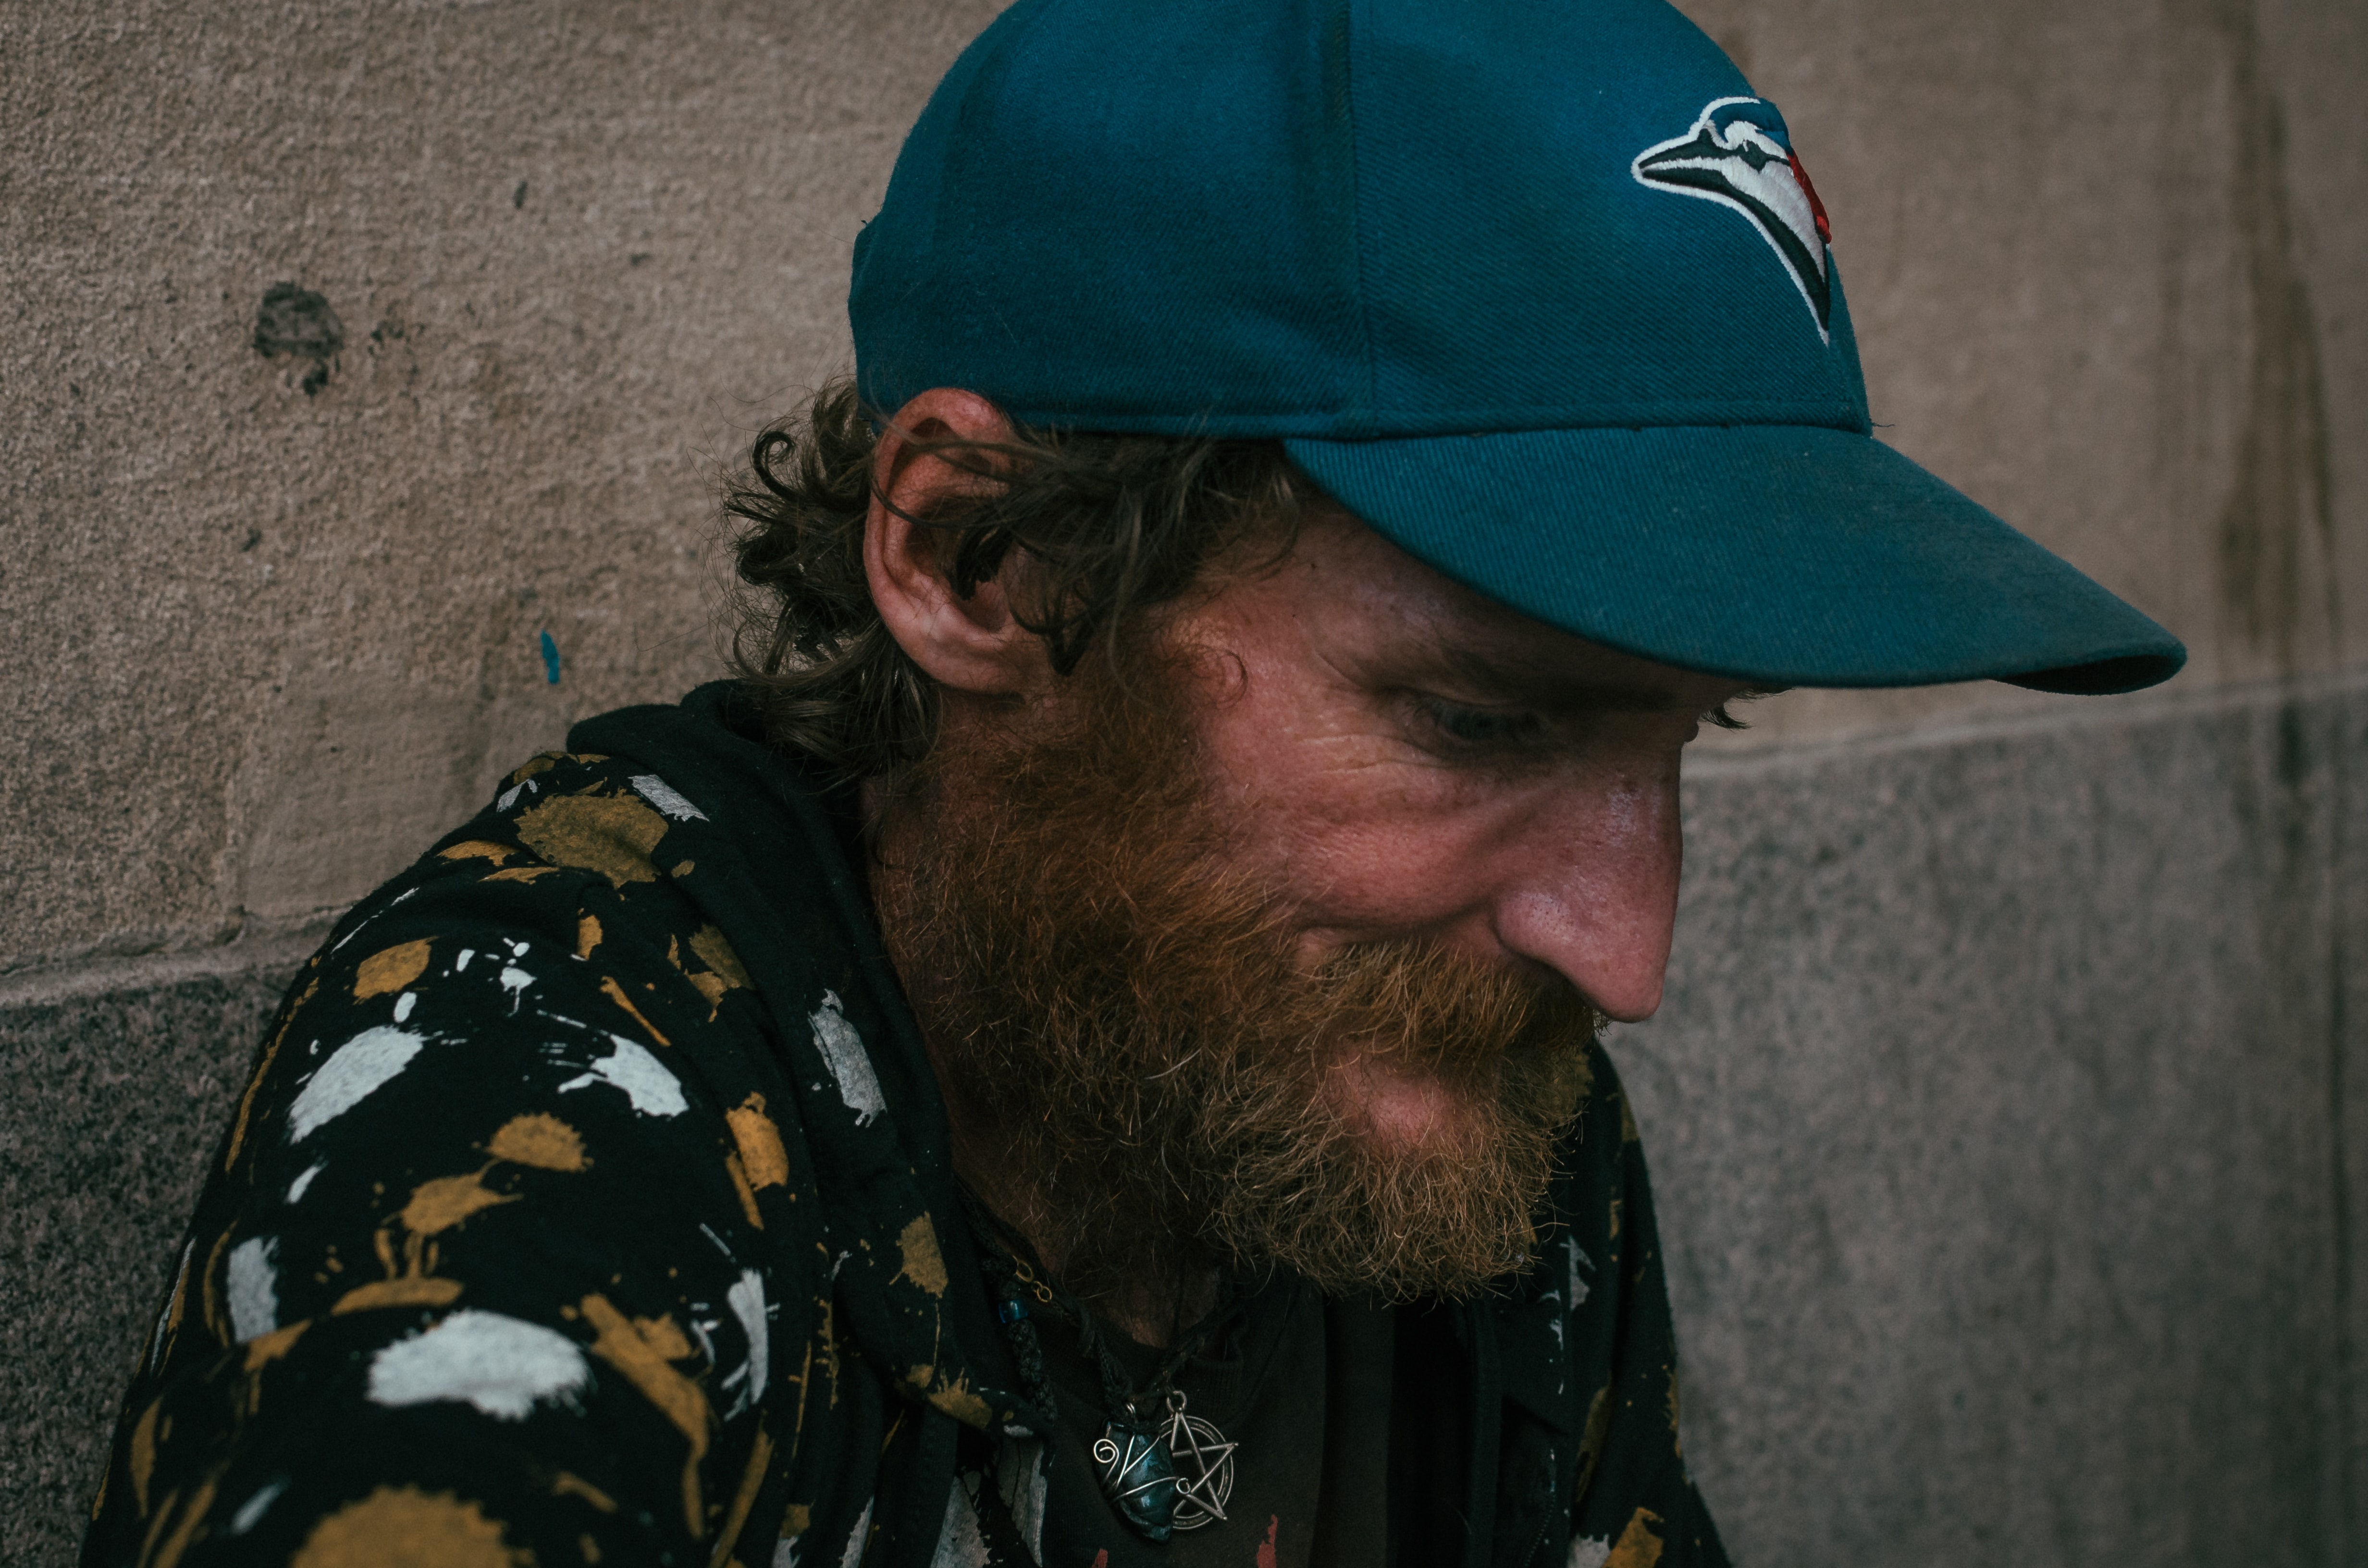 A bearded man wearing a Blue Jays cap and a pentagram pendant looks down while sitting.